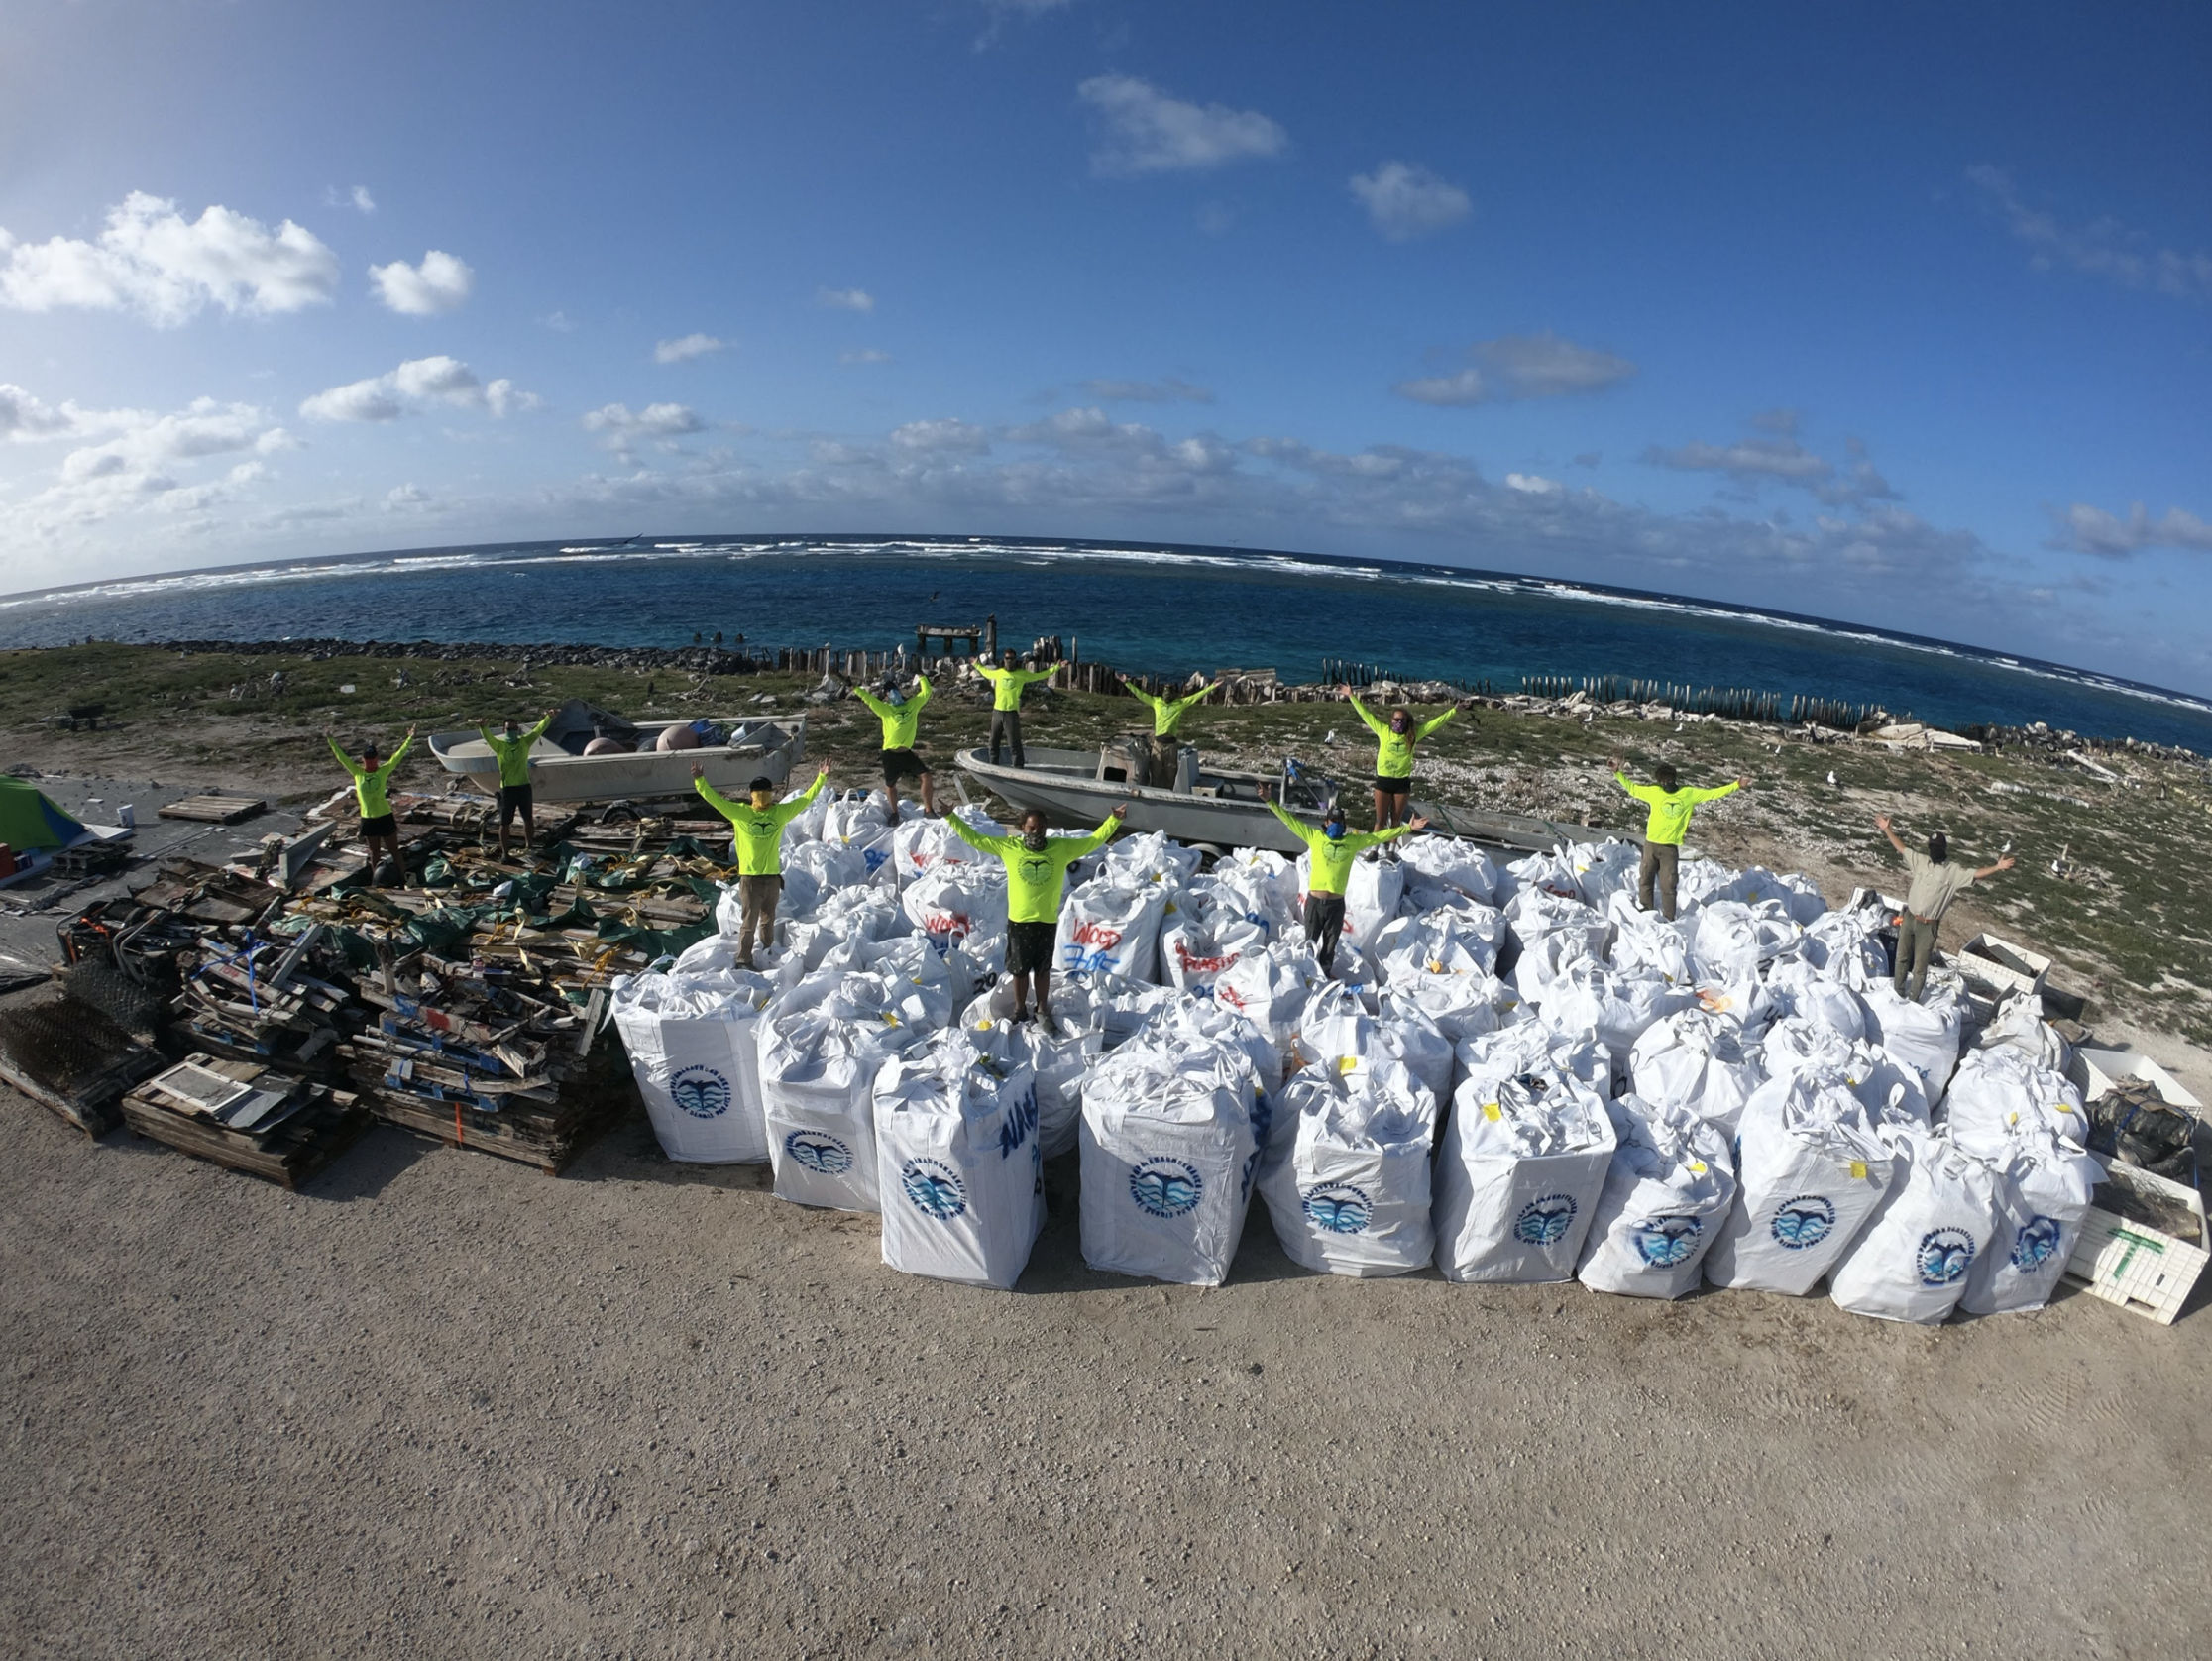 82,600 Pounds of Debris and Trash Removed From Papahānaumokuākea Marine National Monument